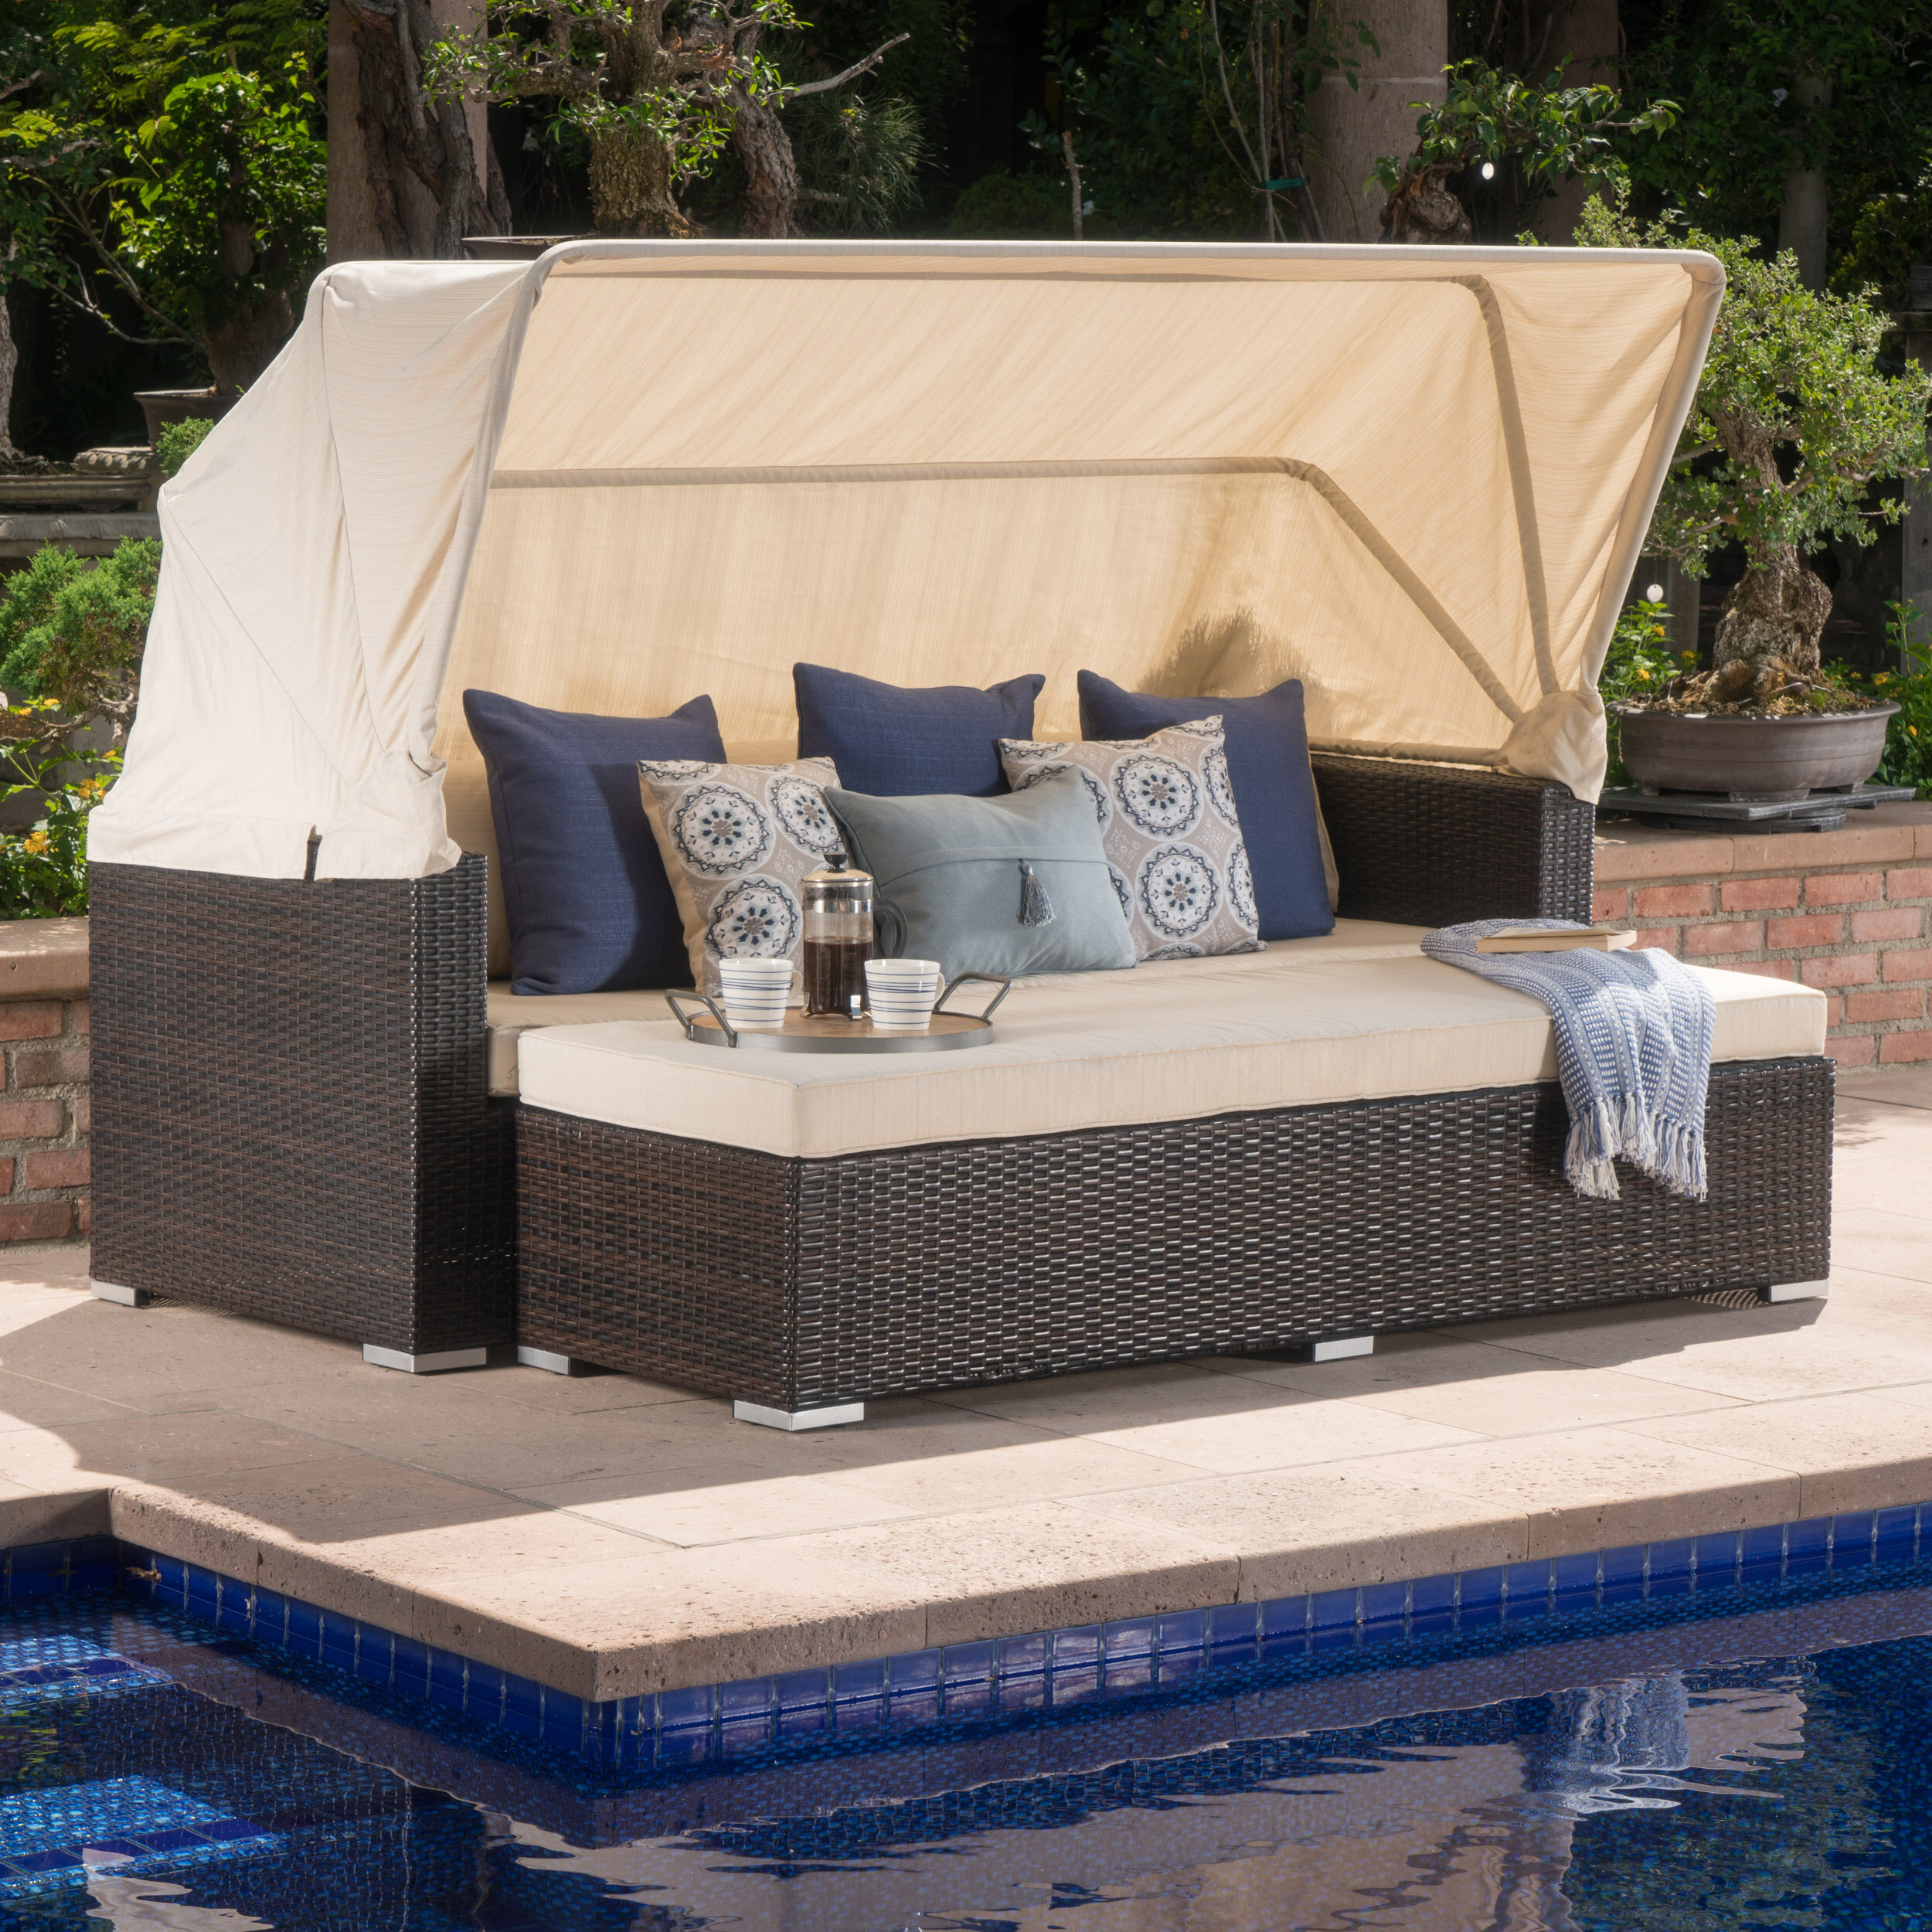 Latest Dowling Patio Daybeds With Cushion Pertaining To Lammers Patio Daybed With Cushions (View 6 of 25)